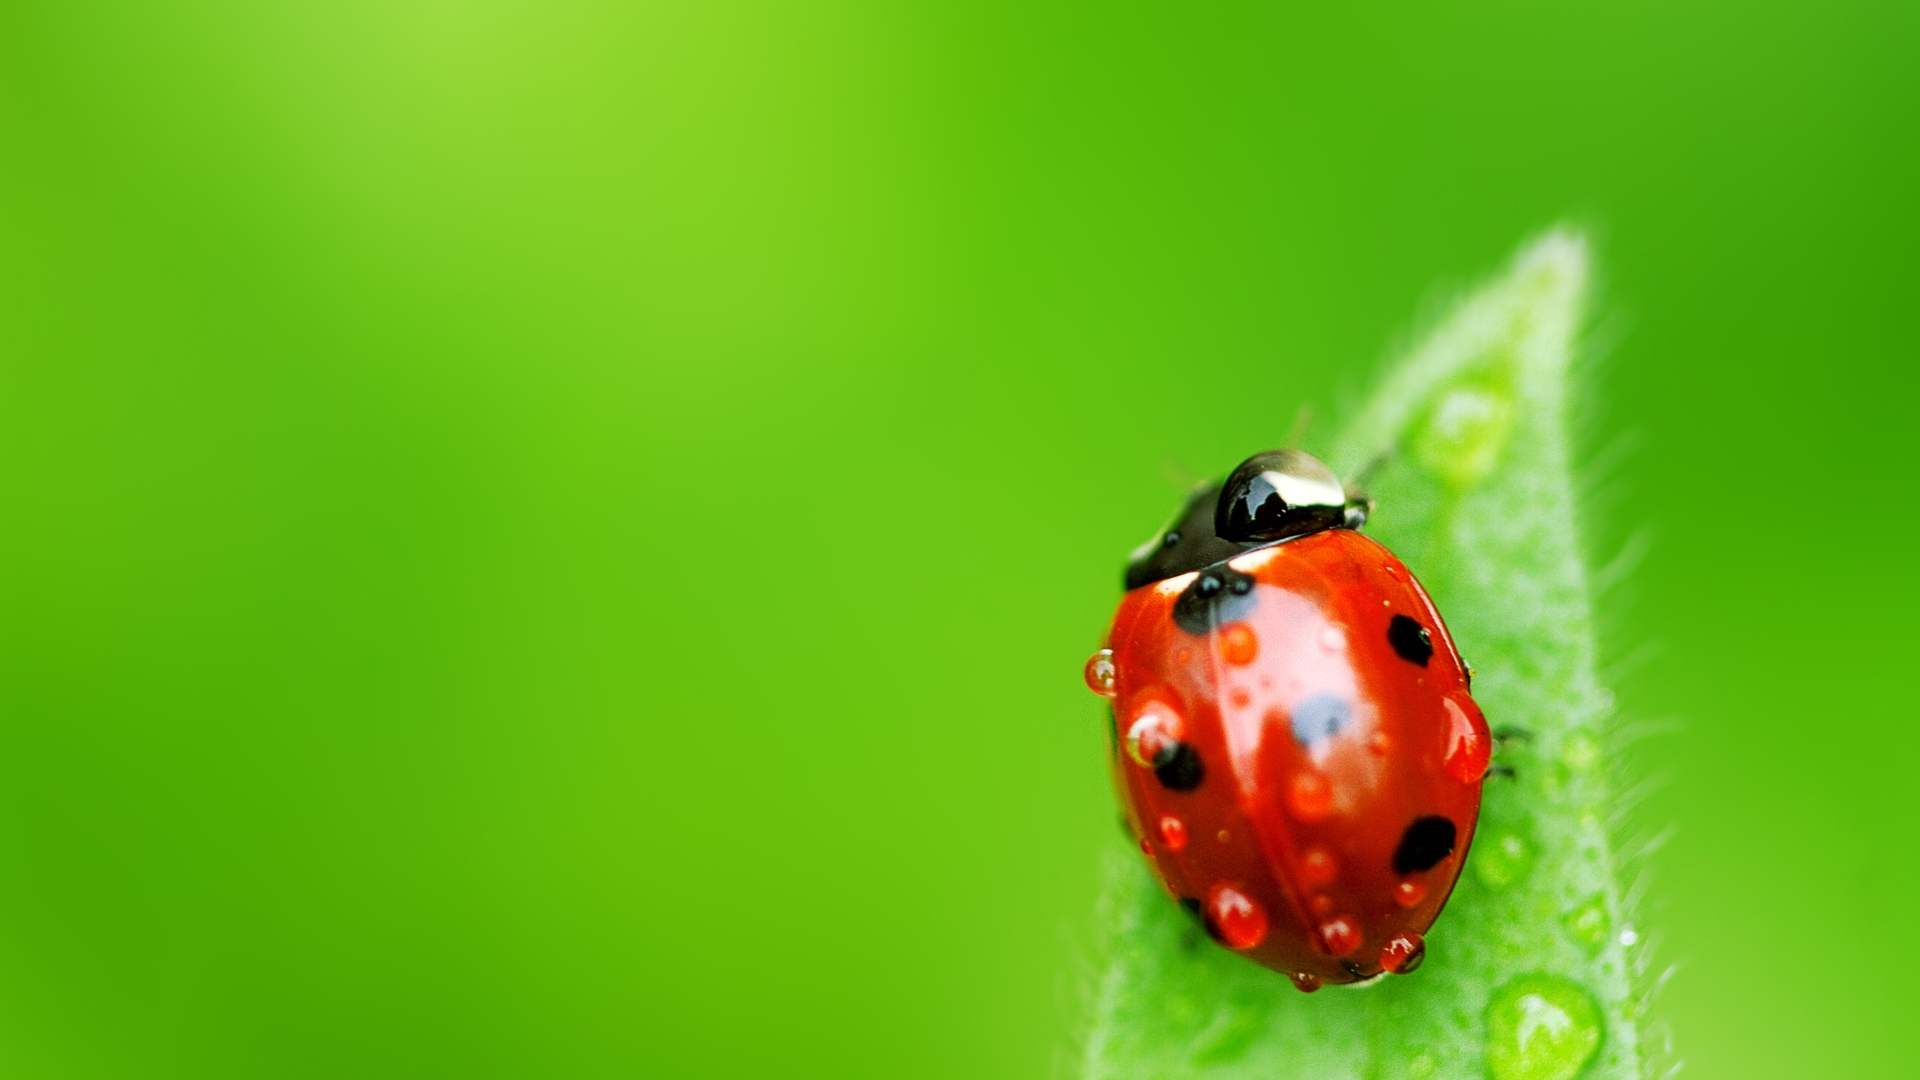 25321 download wallpaper Insects, Ladybugs screensavers and pictures for free